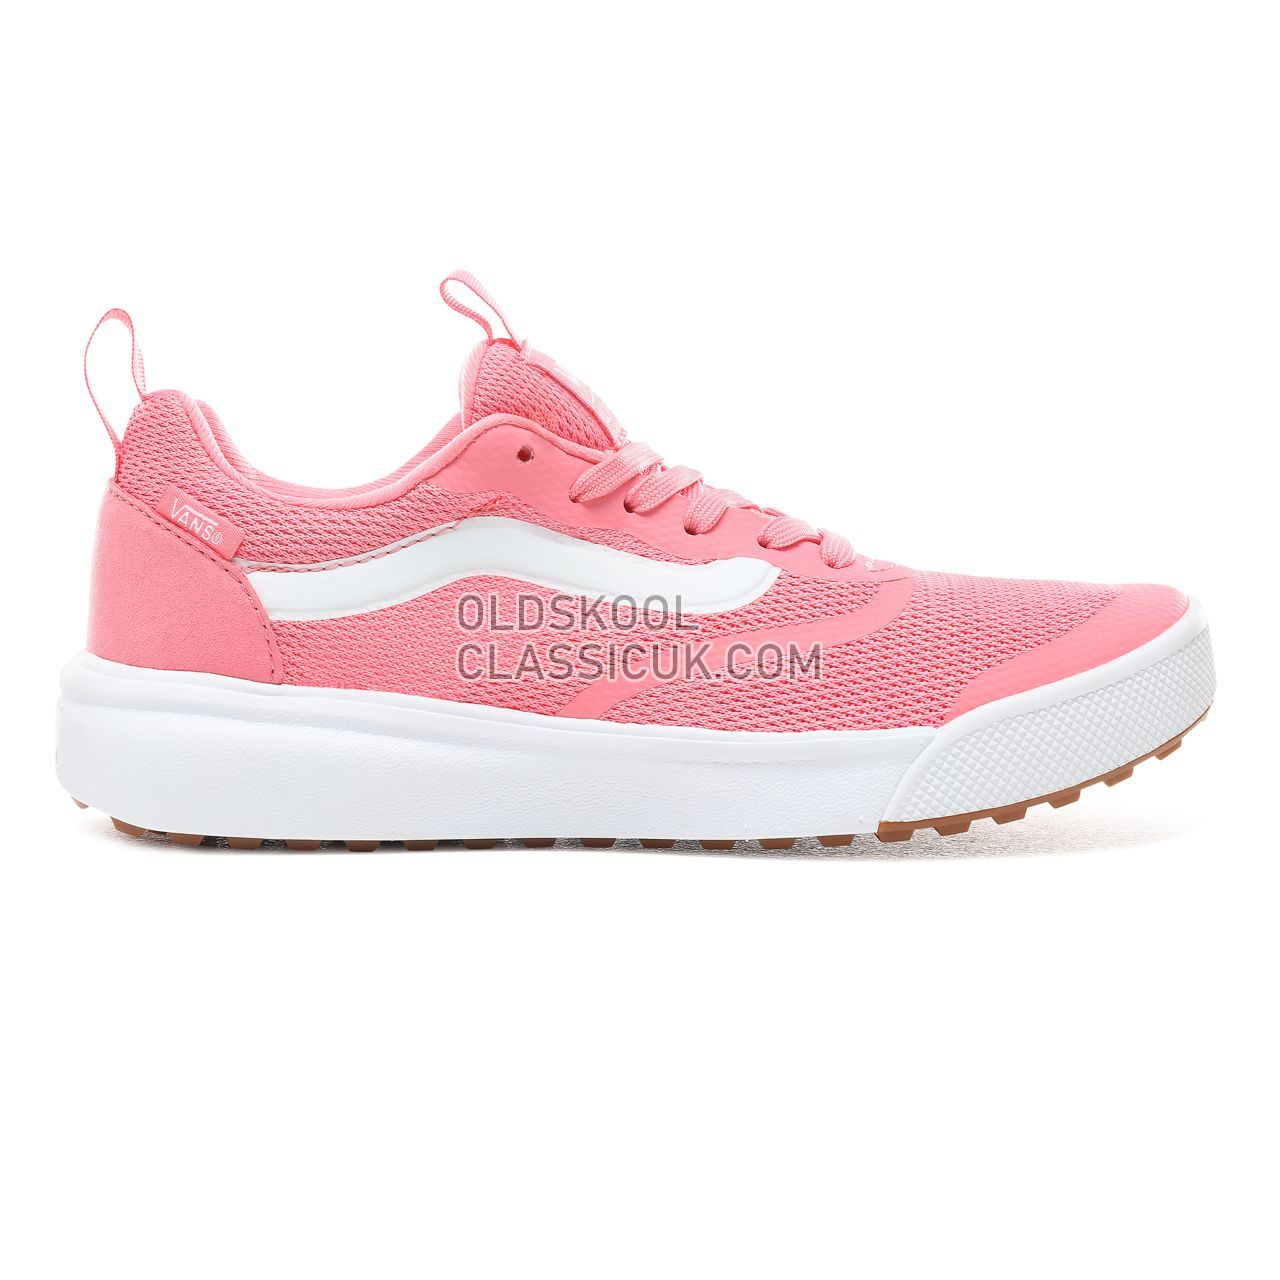 Vans Ultrarange Rapidweld Sneakers Mens Strawberry Pink VN0A3MVUUV6 Shoes